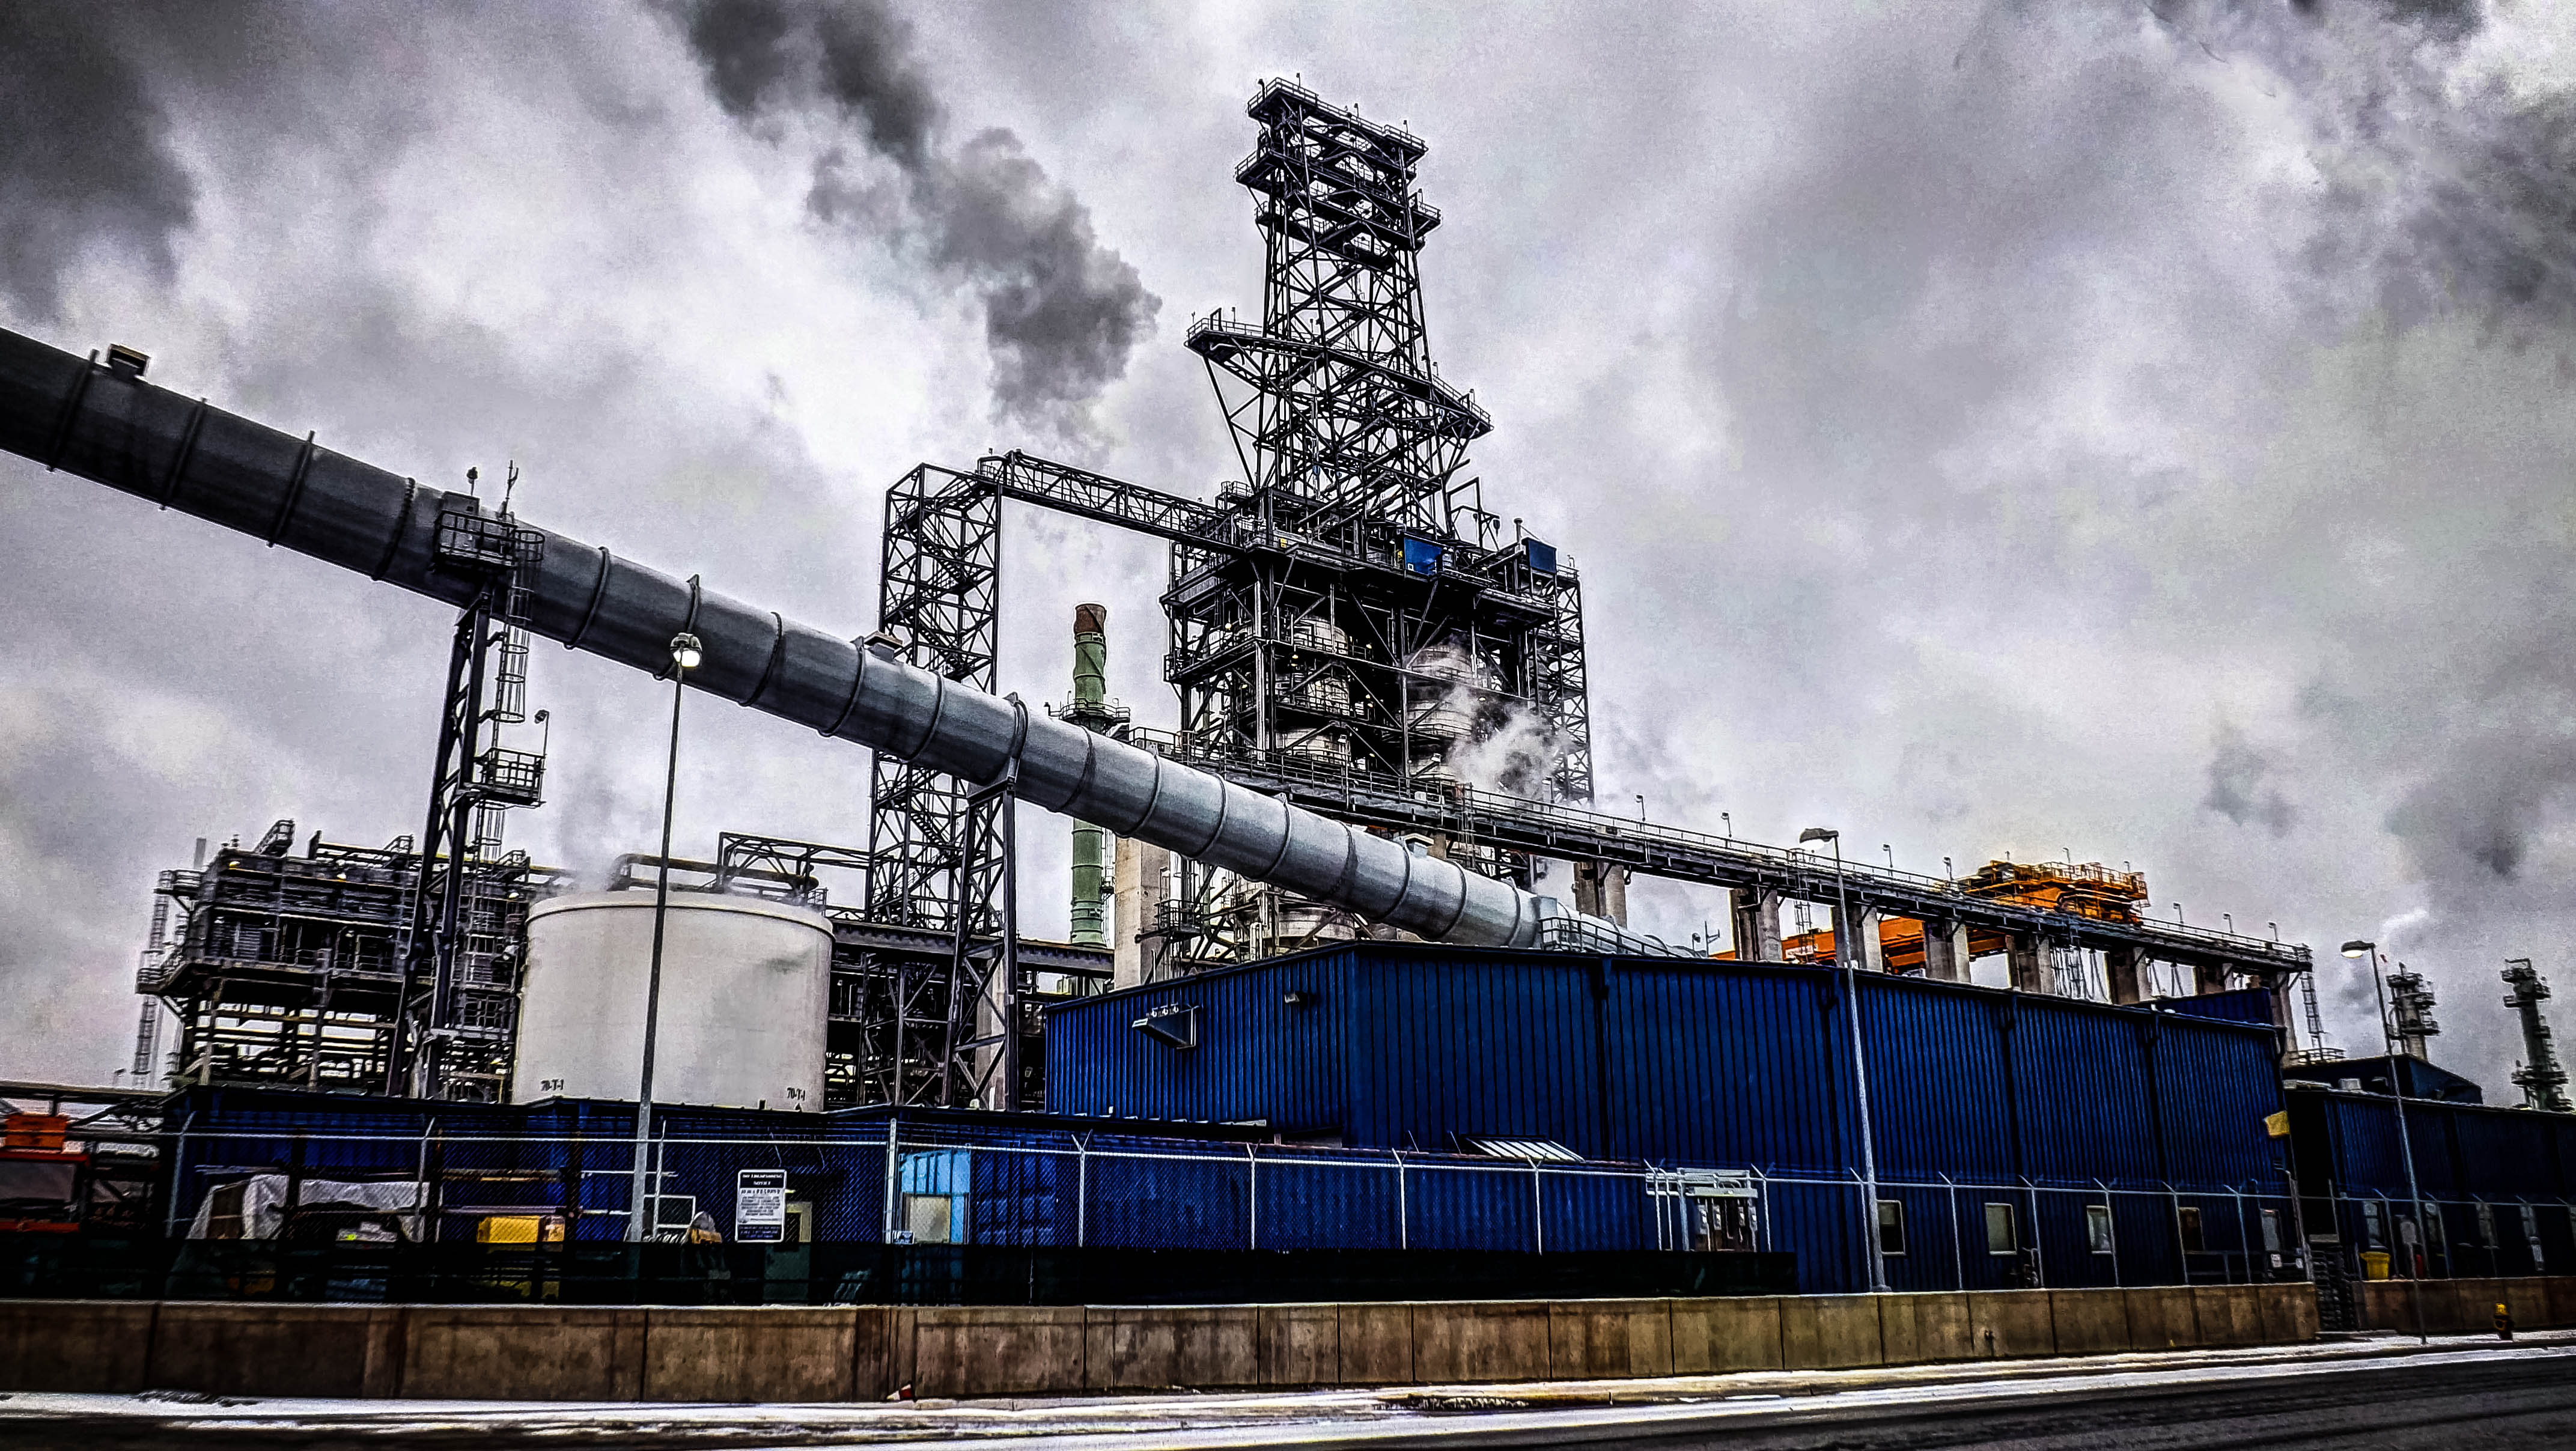 pollution caused by oil refineries Lantic are presented, the main pollution and emission  for minimising pollution and other detrimental environmental  keywords: oil refinery north atlantic environmental impact  dents, which have caused serious environmental dam.